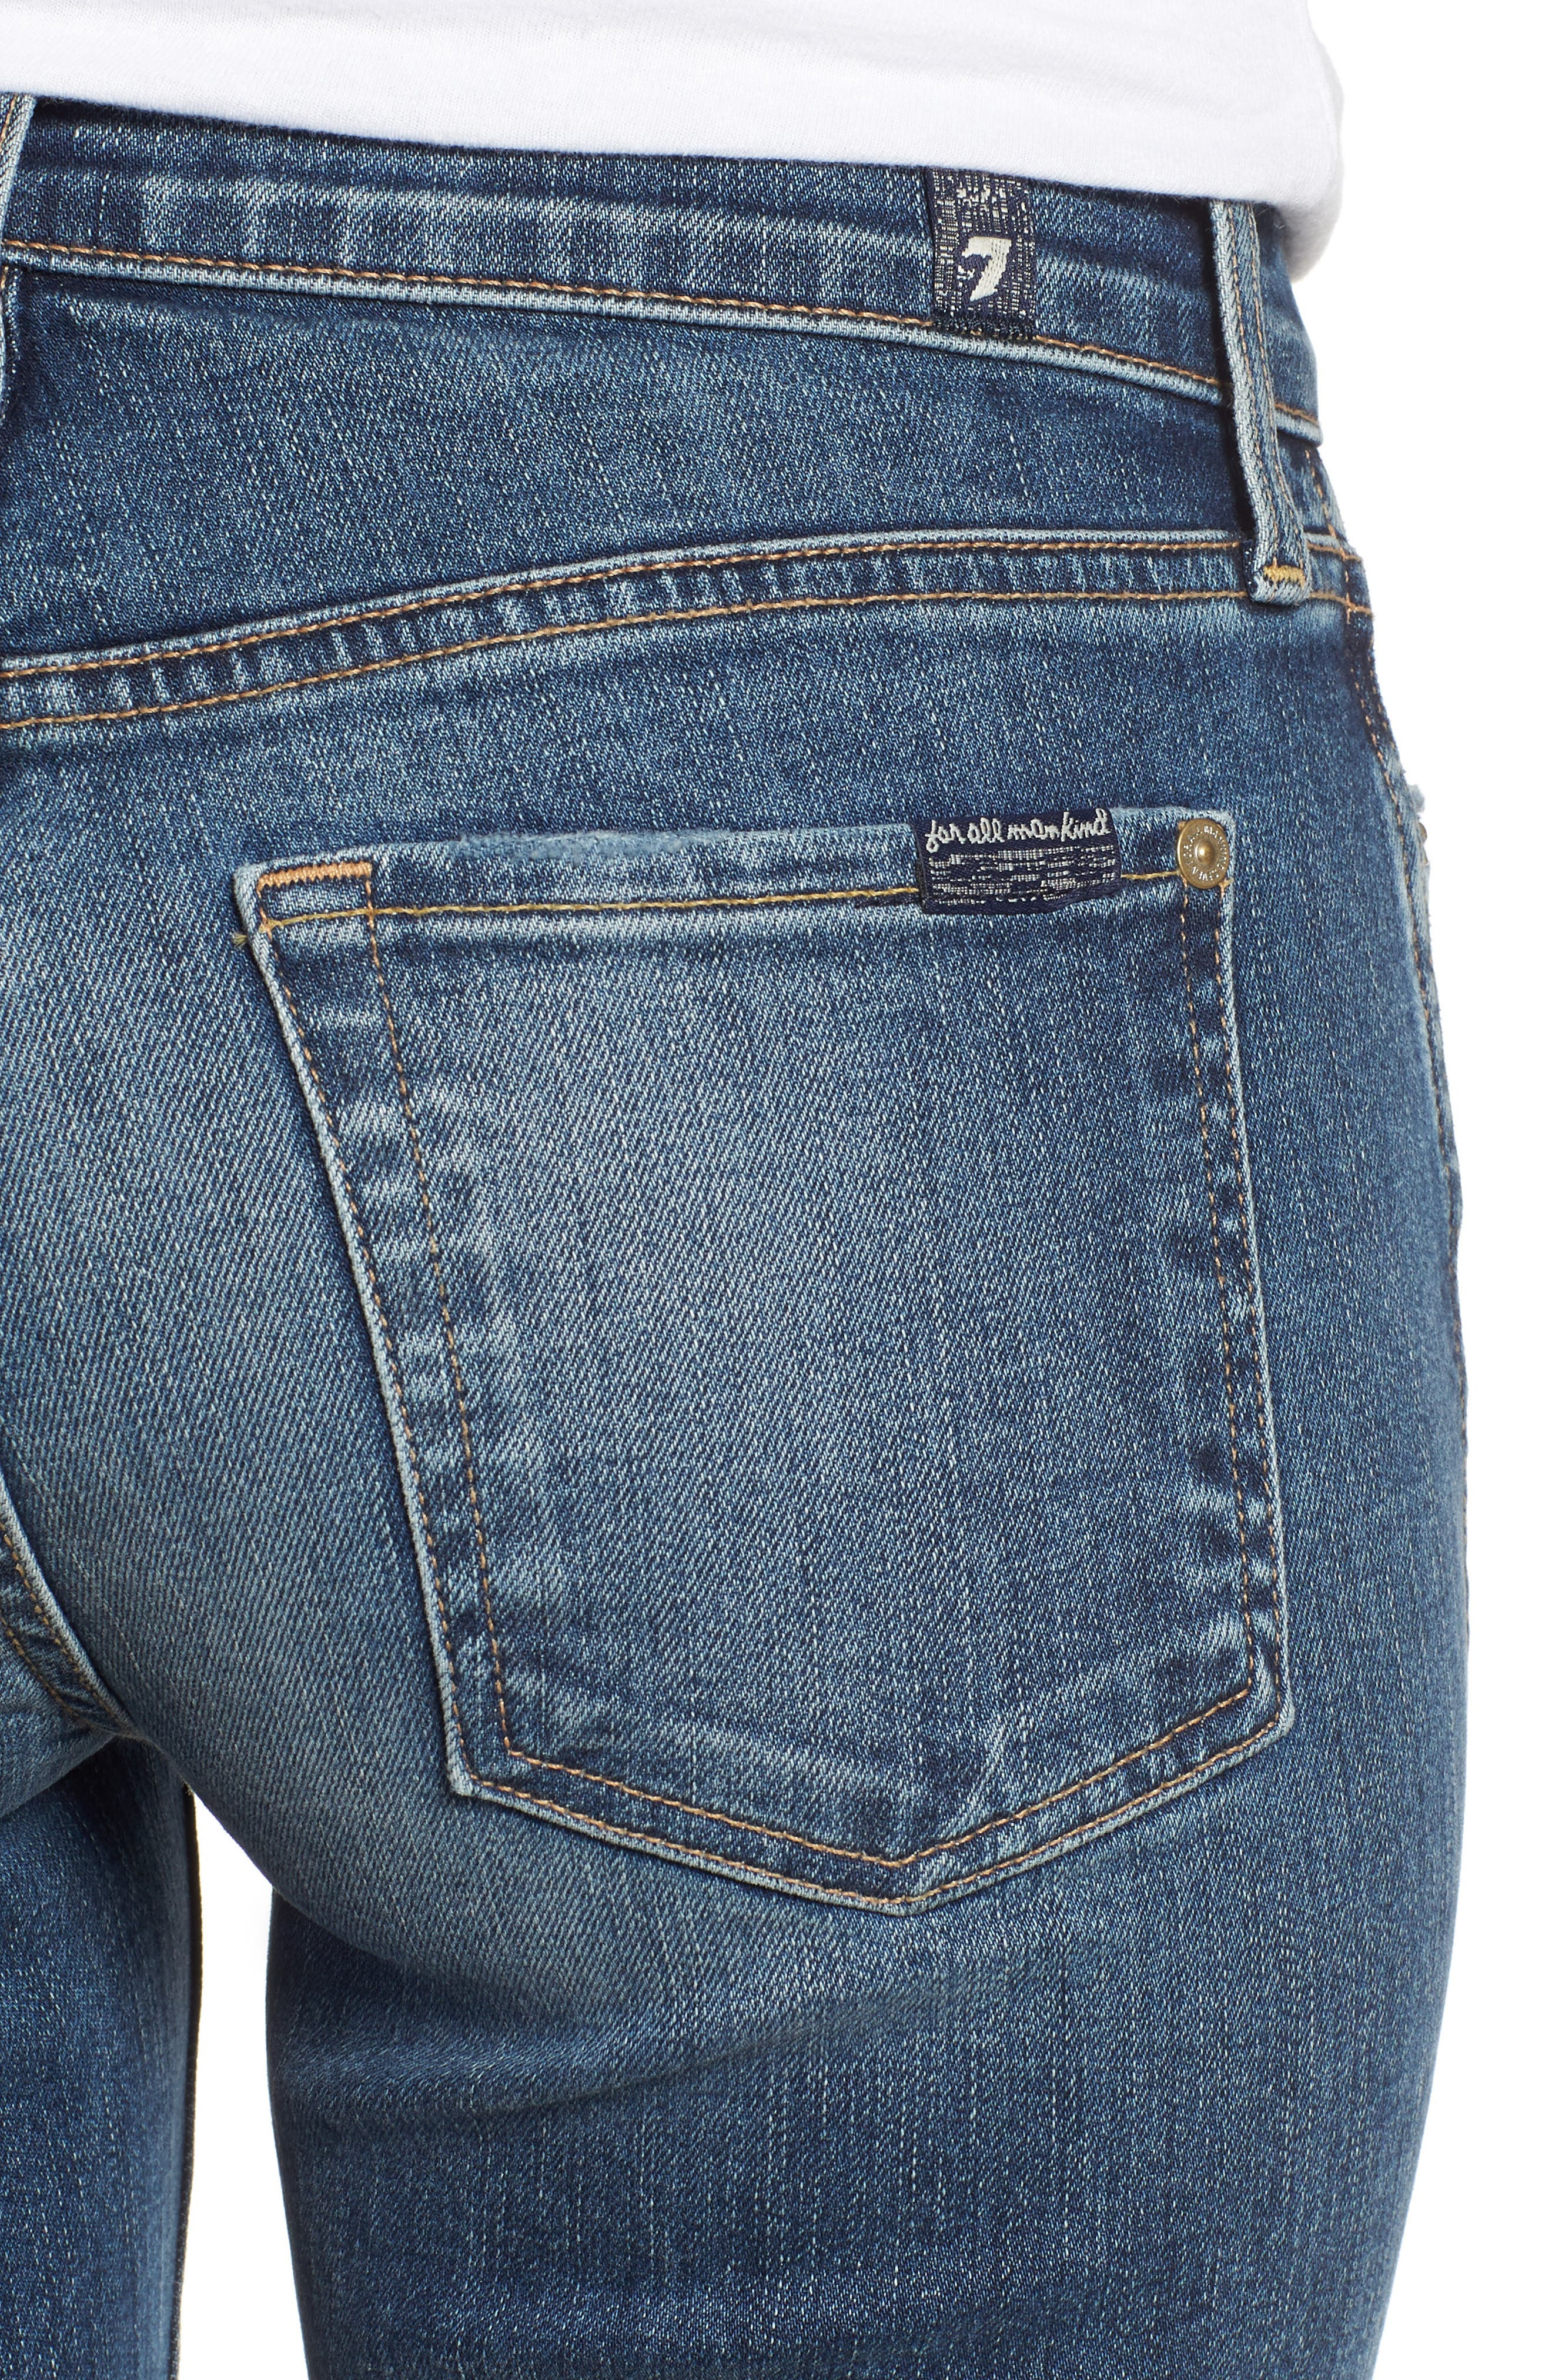 7 FOR ALL MANKIND<SUP>®</SUP>, High Waist Fray Crop Bootcut Jeans, Alternate thumbnail 5, color, 400